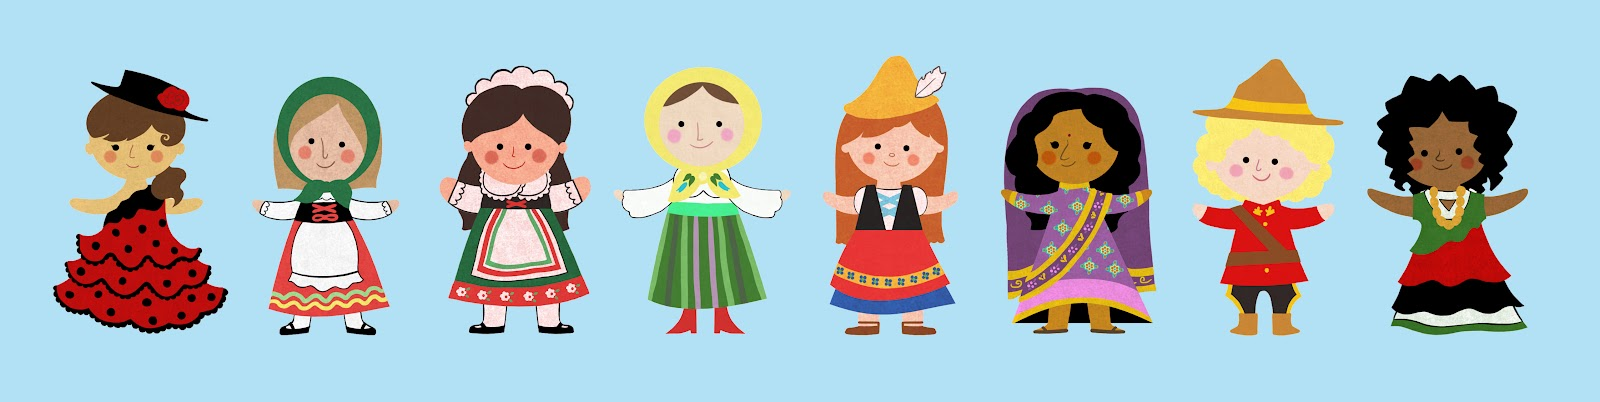 Its a small world clip art on